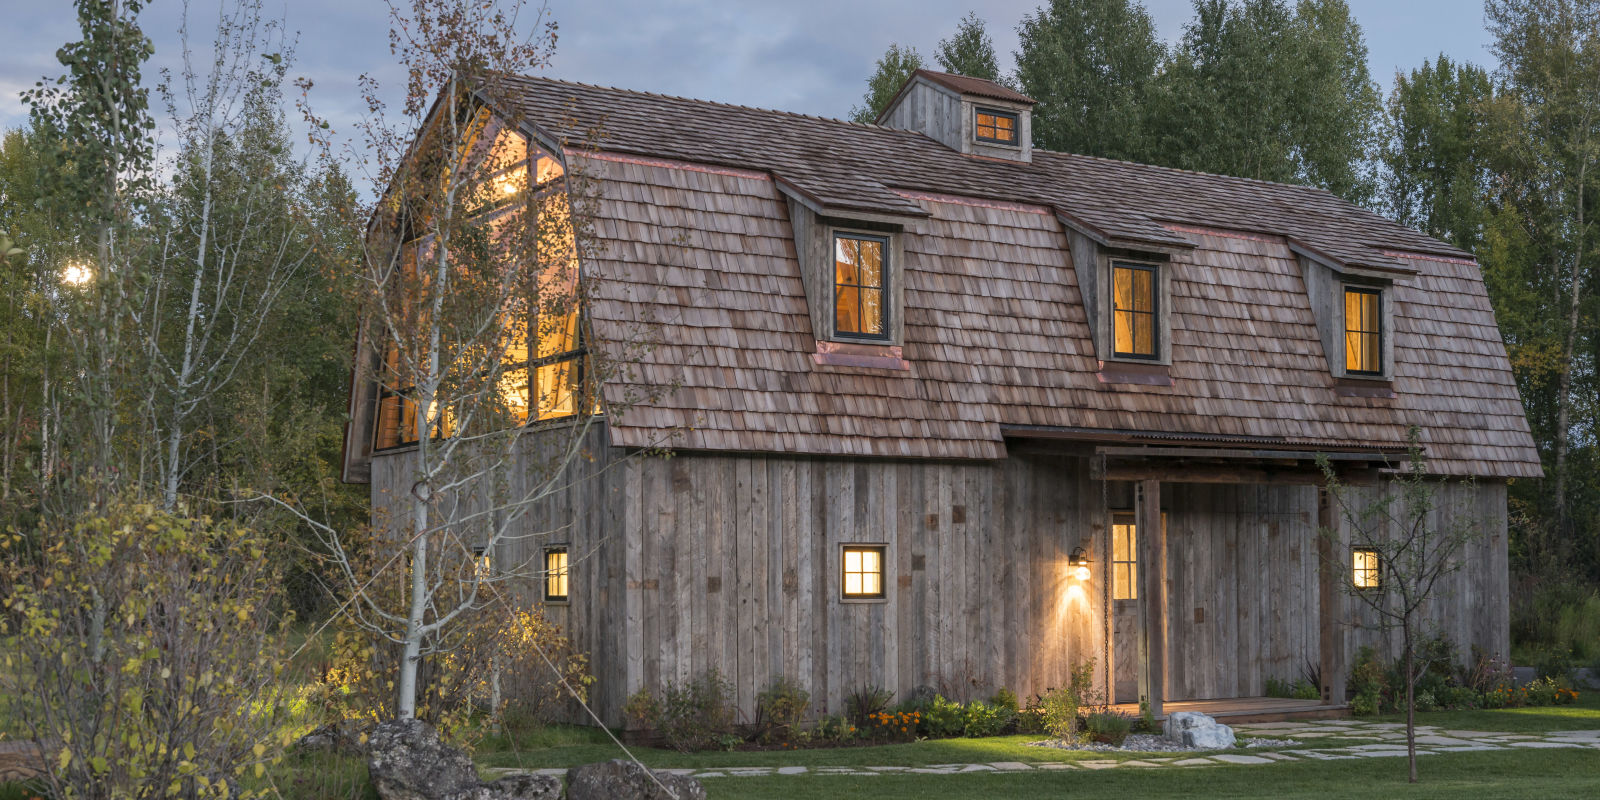 This Guest House Was Built to Look Like a Rustic Barn - Rustic Barn-Inspired  Guest House Photos